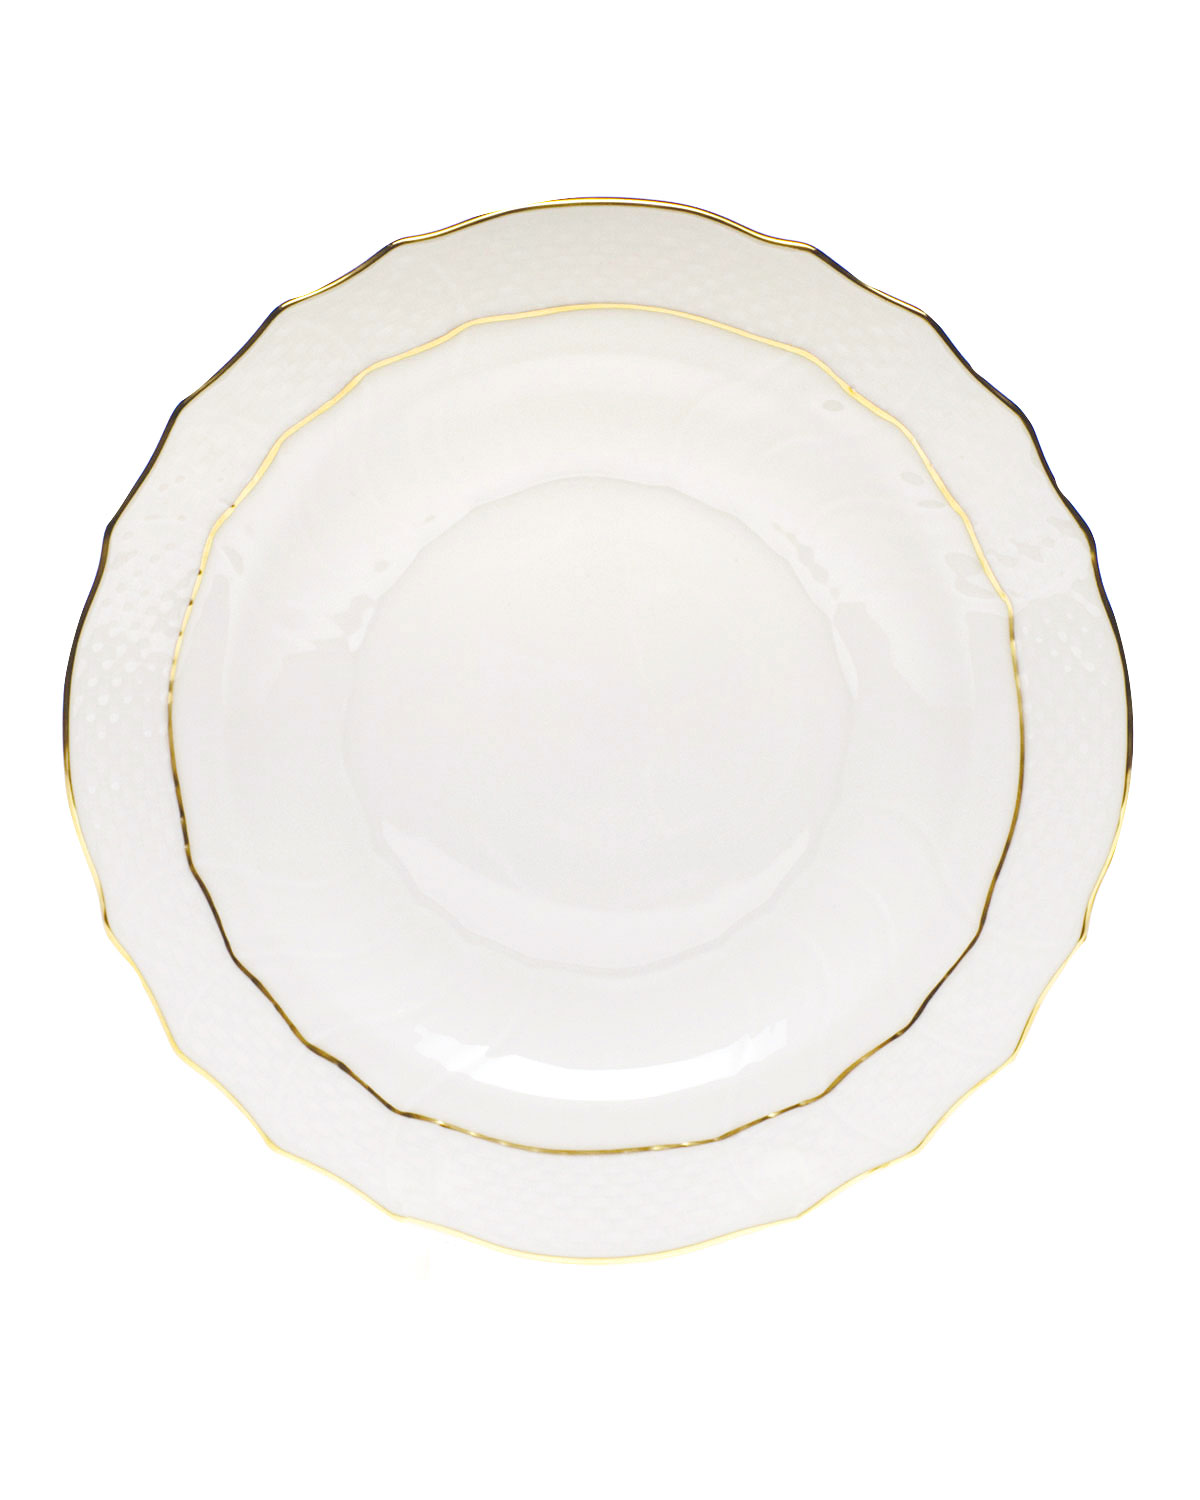 Herend Dinnerwares GOLDEN EDGE SALAD PLATE